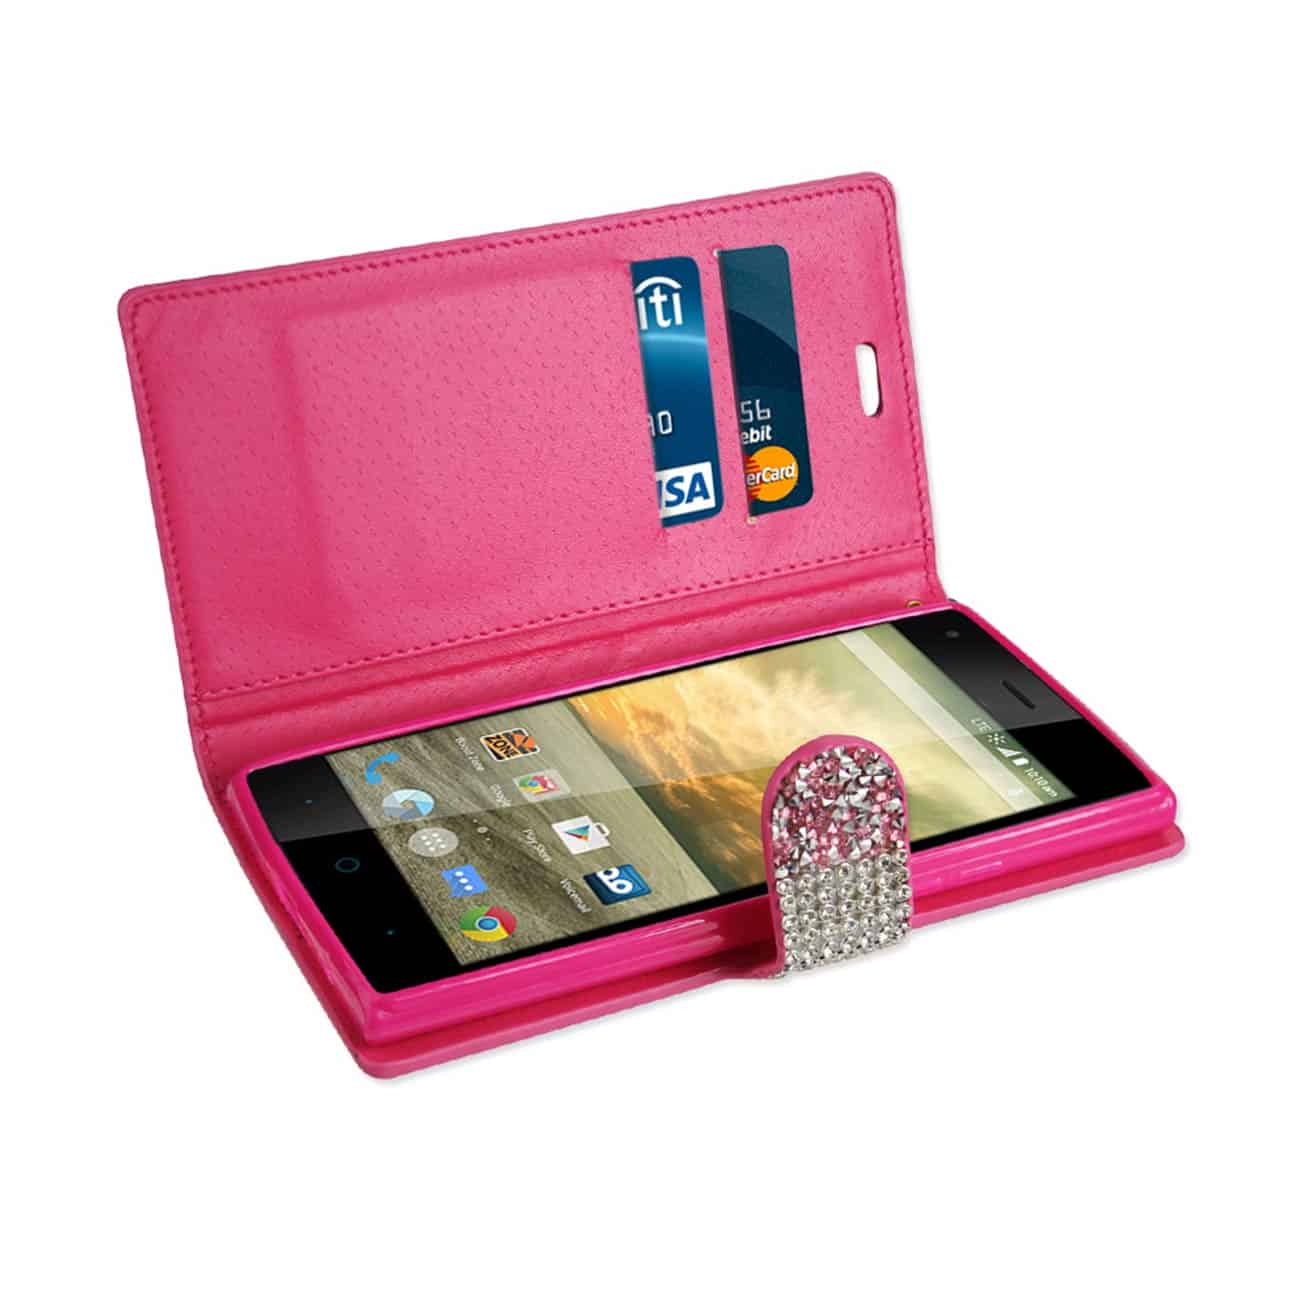 ZTE WARP ELITE JEWELRY RHINESTONE WALLET CASE IN PINK